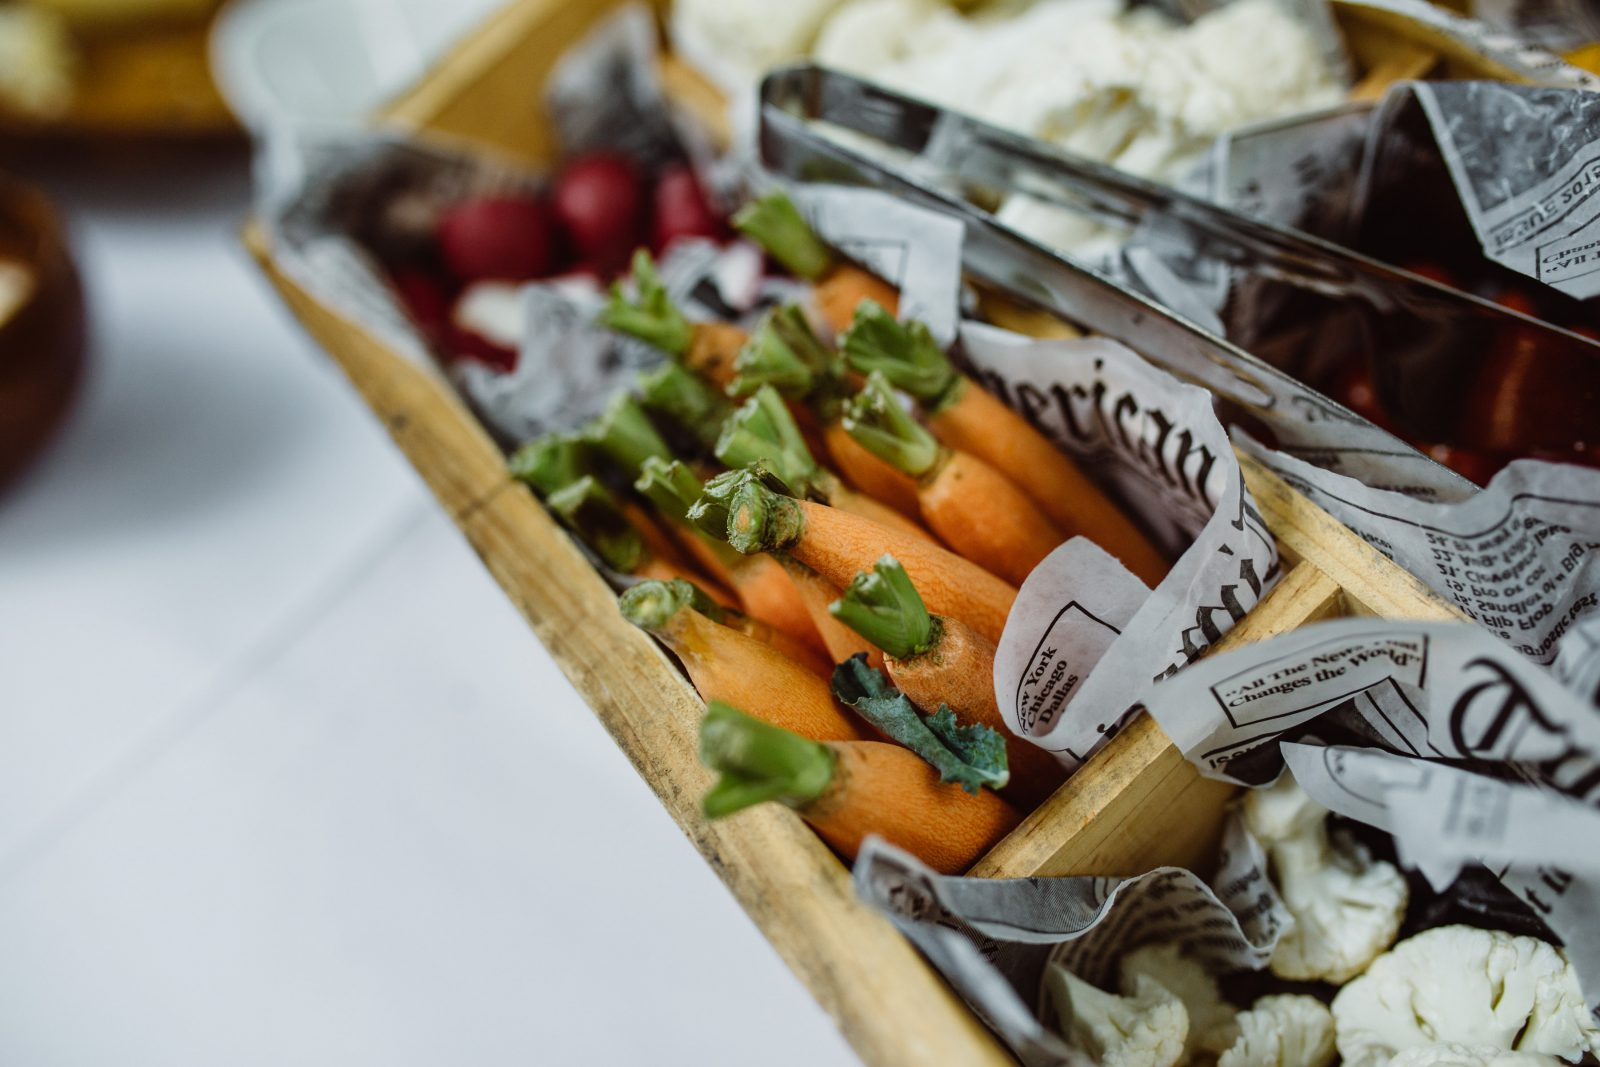 Crudite appetizers in rustic wooden bins lined with paper by Sage Catered Events at Ridgeland Mansion Philadelphia Wedding. Photo by Ali & Paul Co.